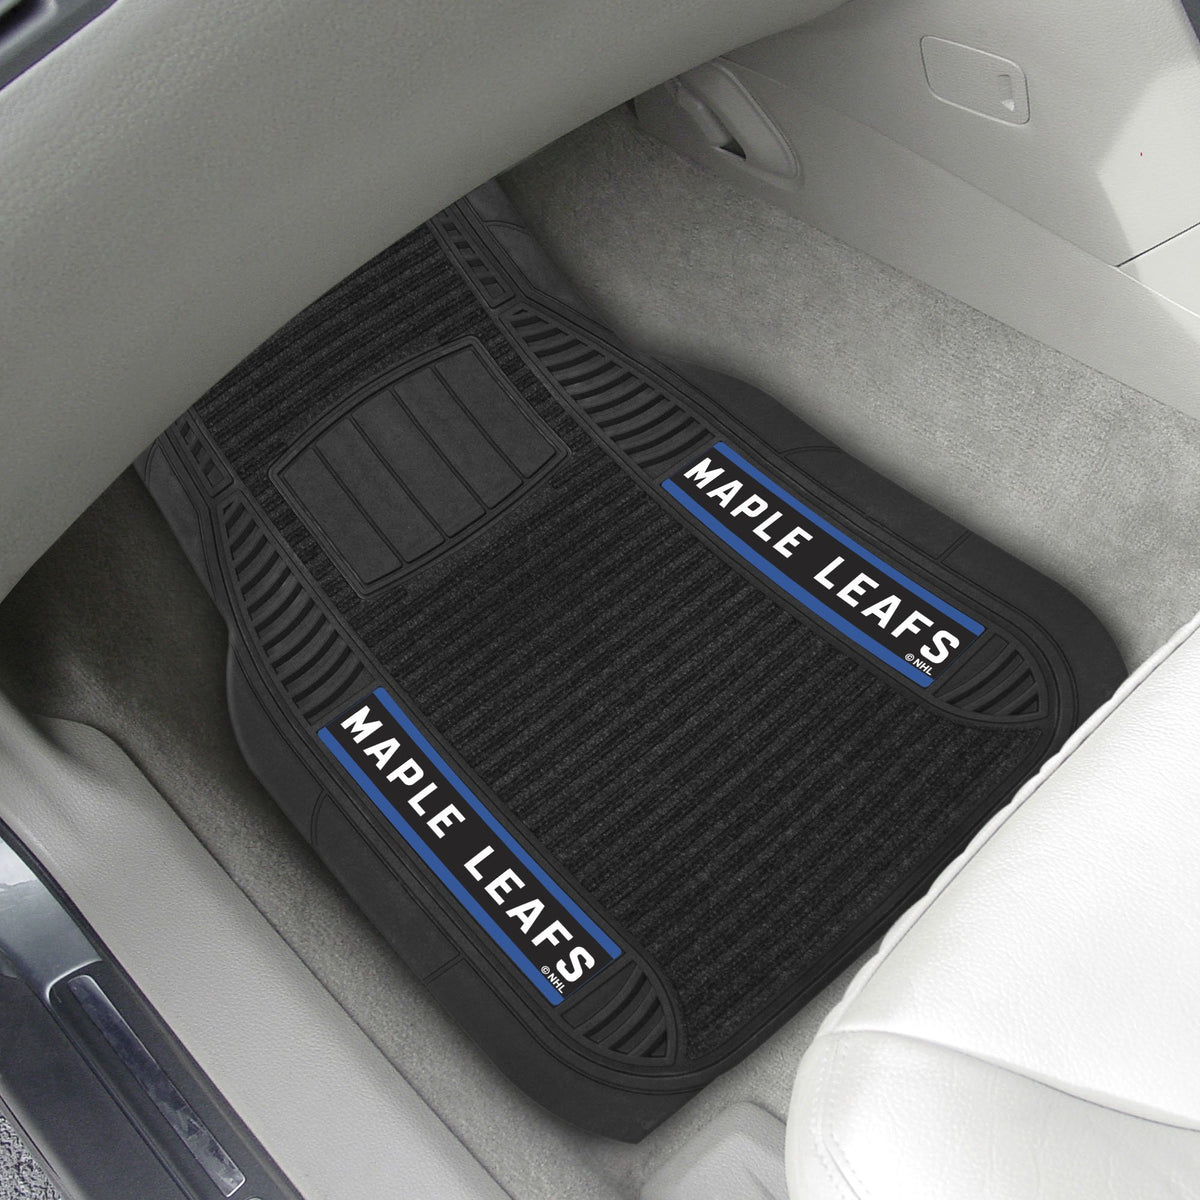 NHL - Deluxe Car Mat, 2-Piece Set NHL Mats, Front Car Mats, 2-pc Deluxe Car Mat Set, NHL, Auto Fan Mats Toronto Maple Leafs